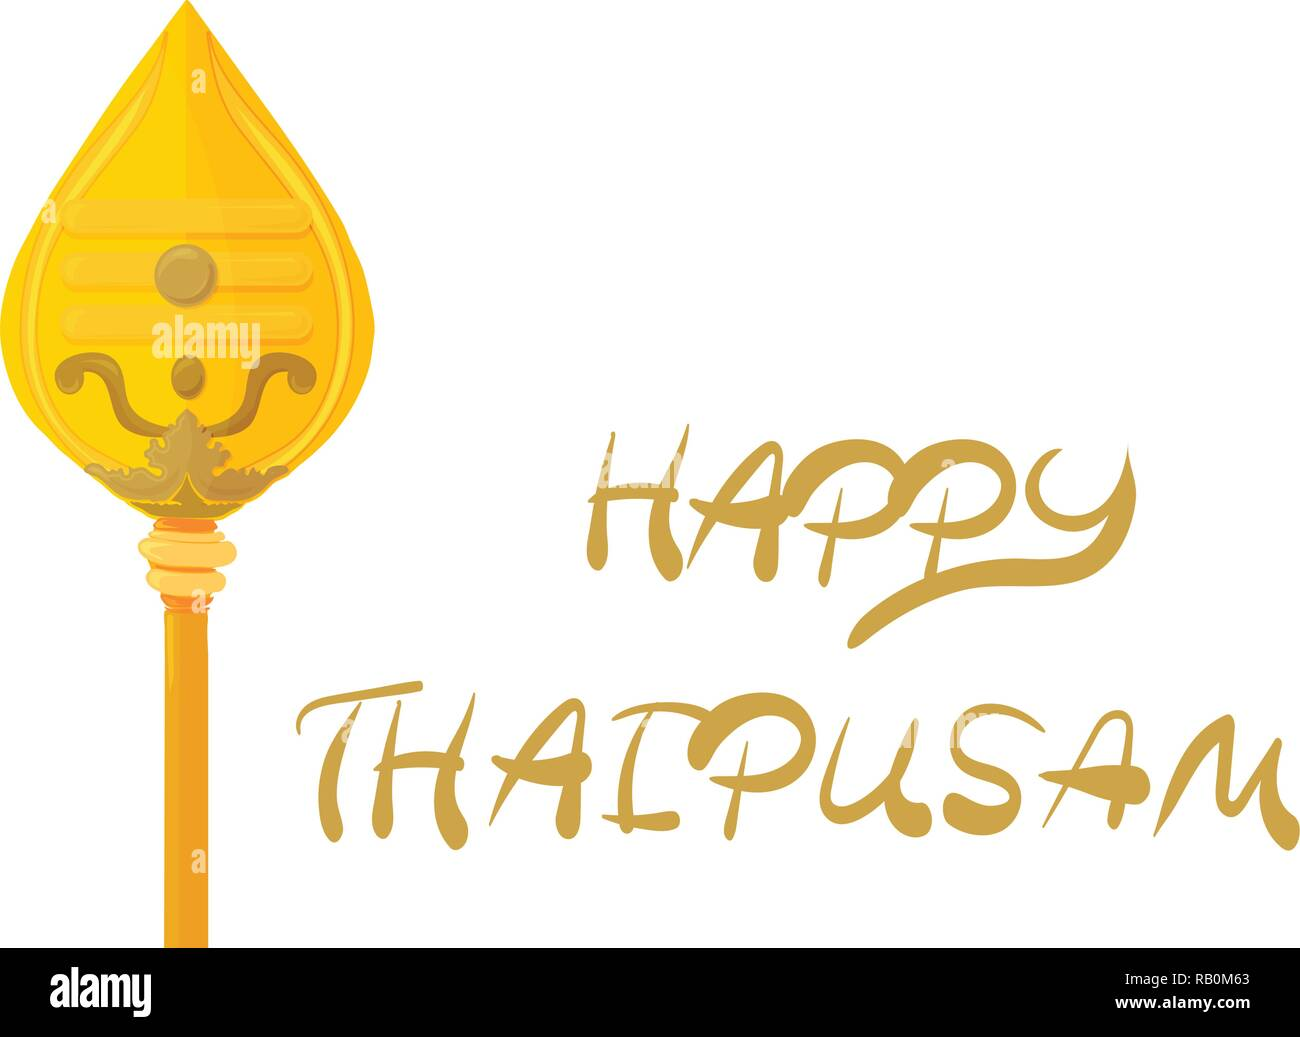 Vector illustration for Tamil community: Happy Thaipusam greeting card, banner or icon. - Stock Image